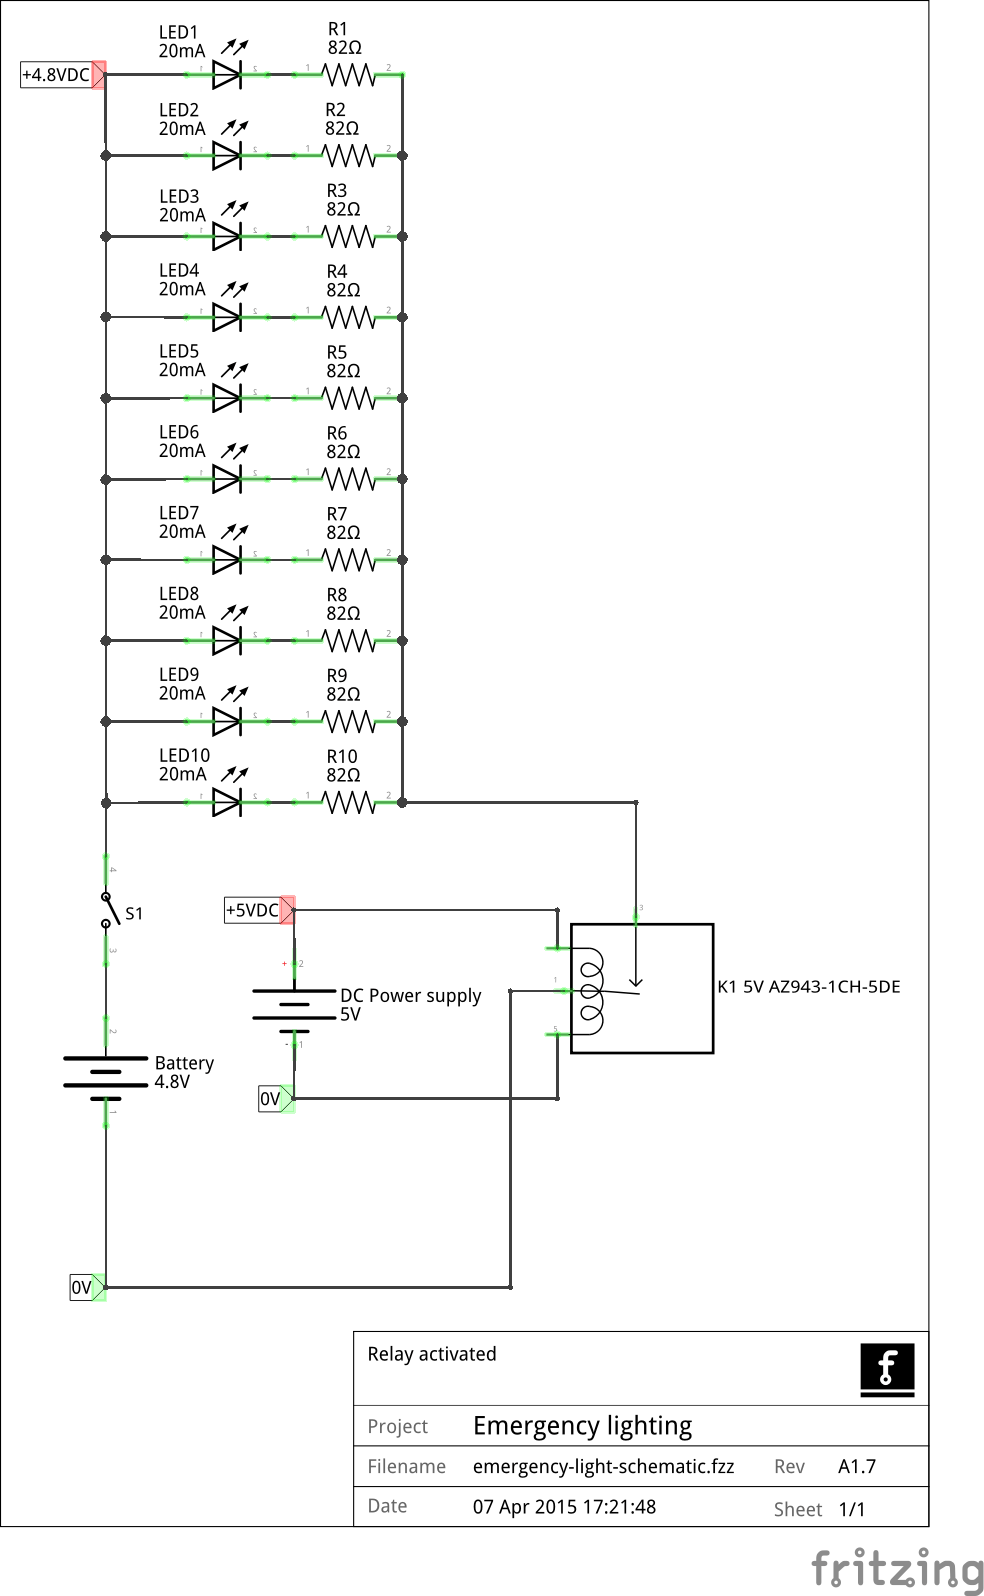 wiring diagram for emergency lighting switch york air conditioner led - relay activated electrical engineering stack exchange